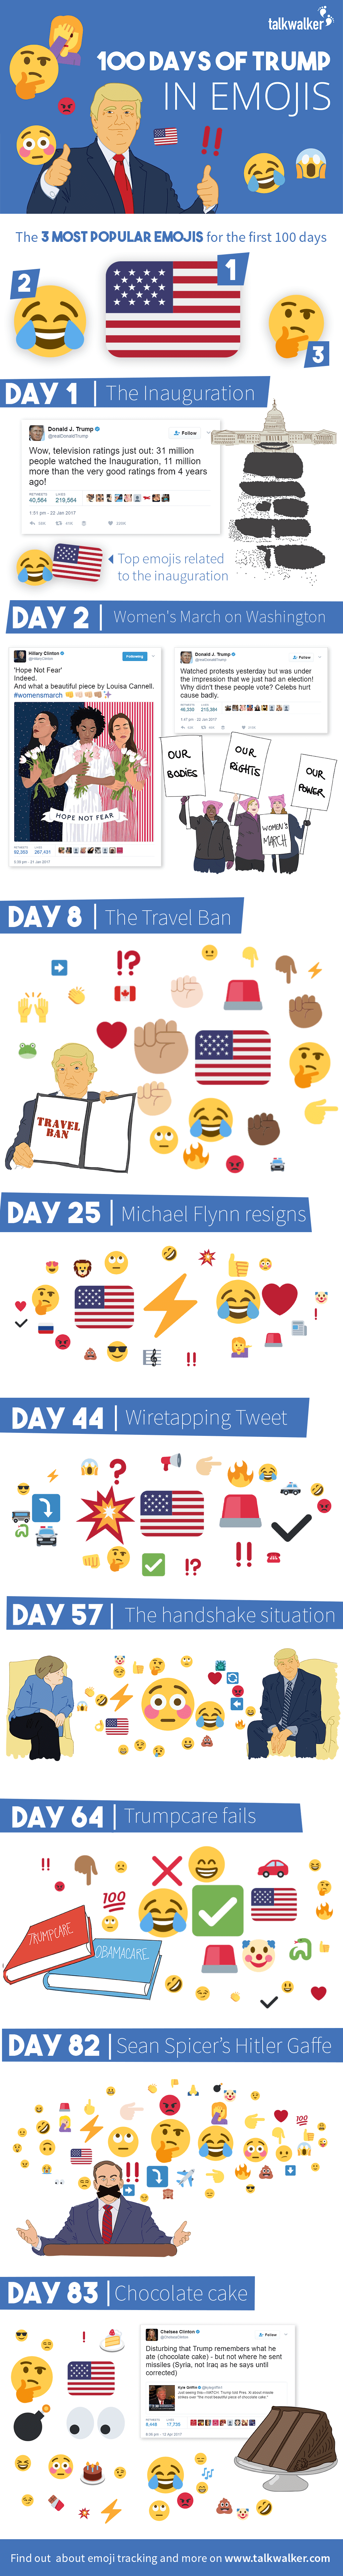 100 Days of Trump in Emojis #Infographic